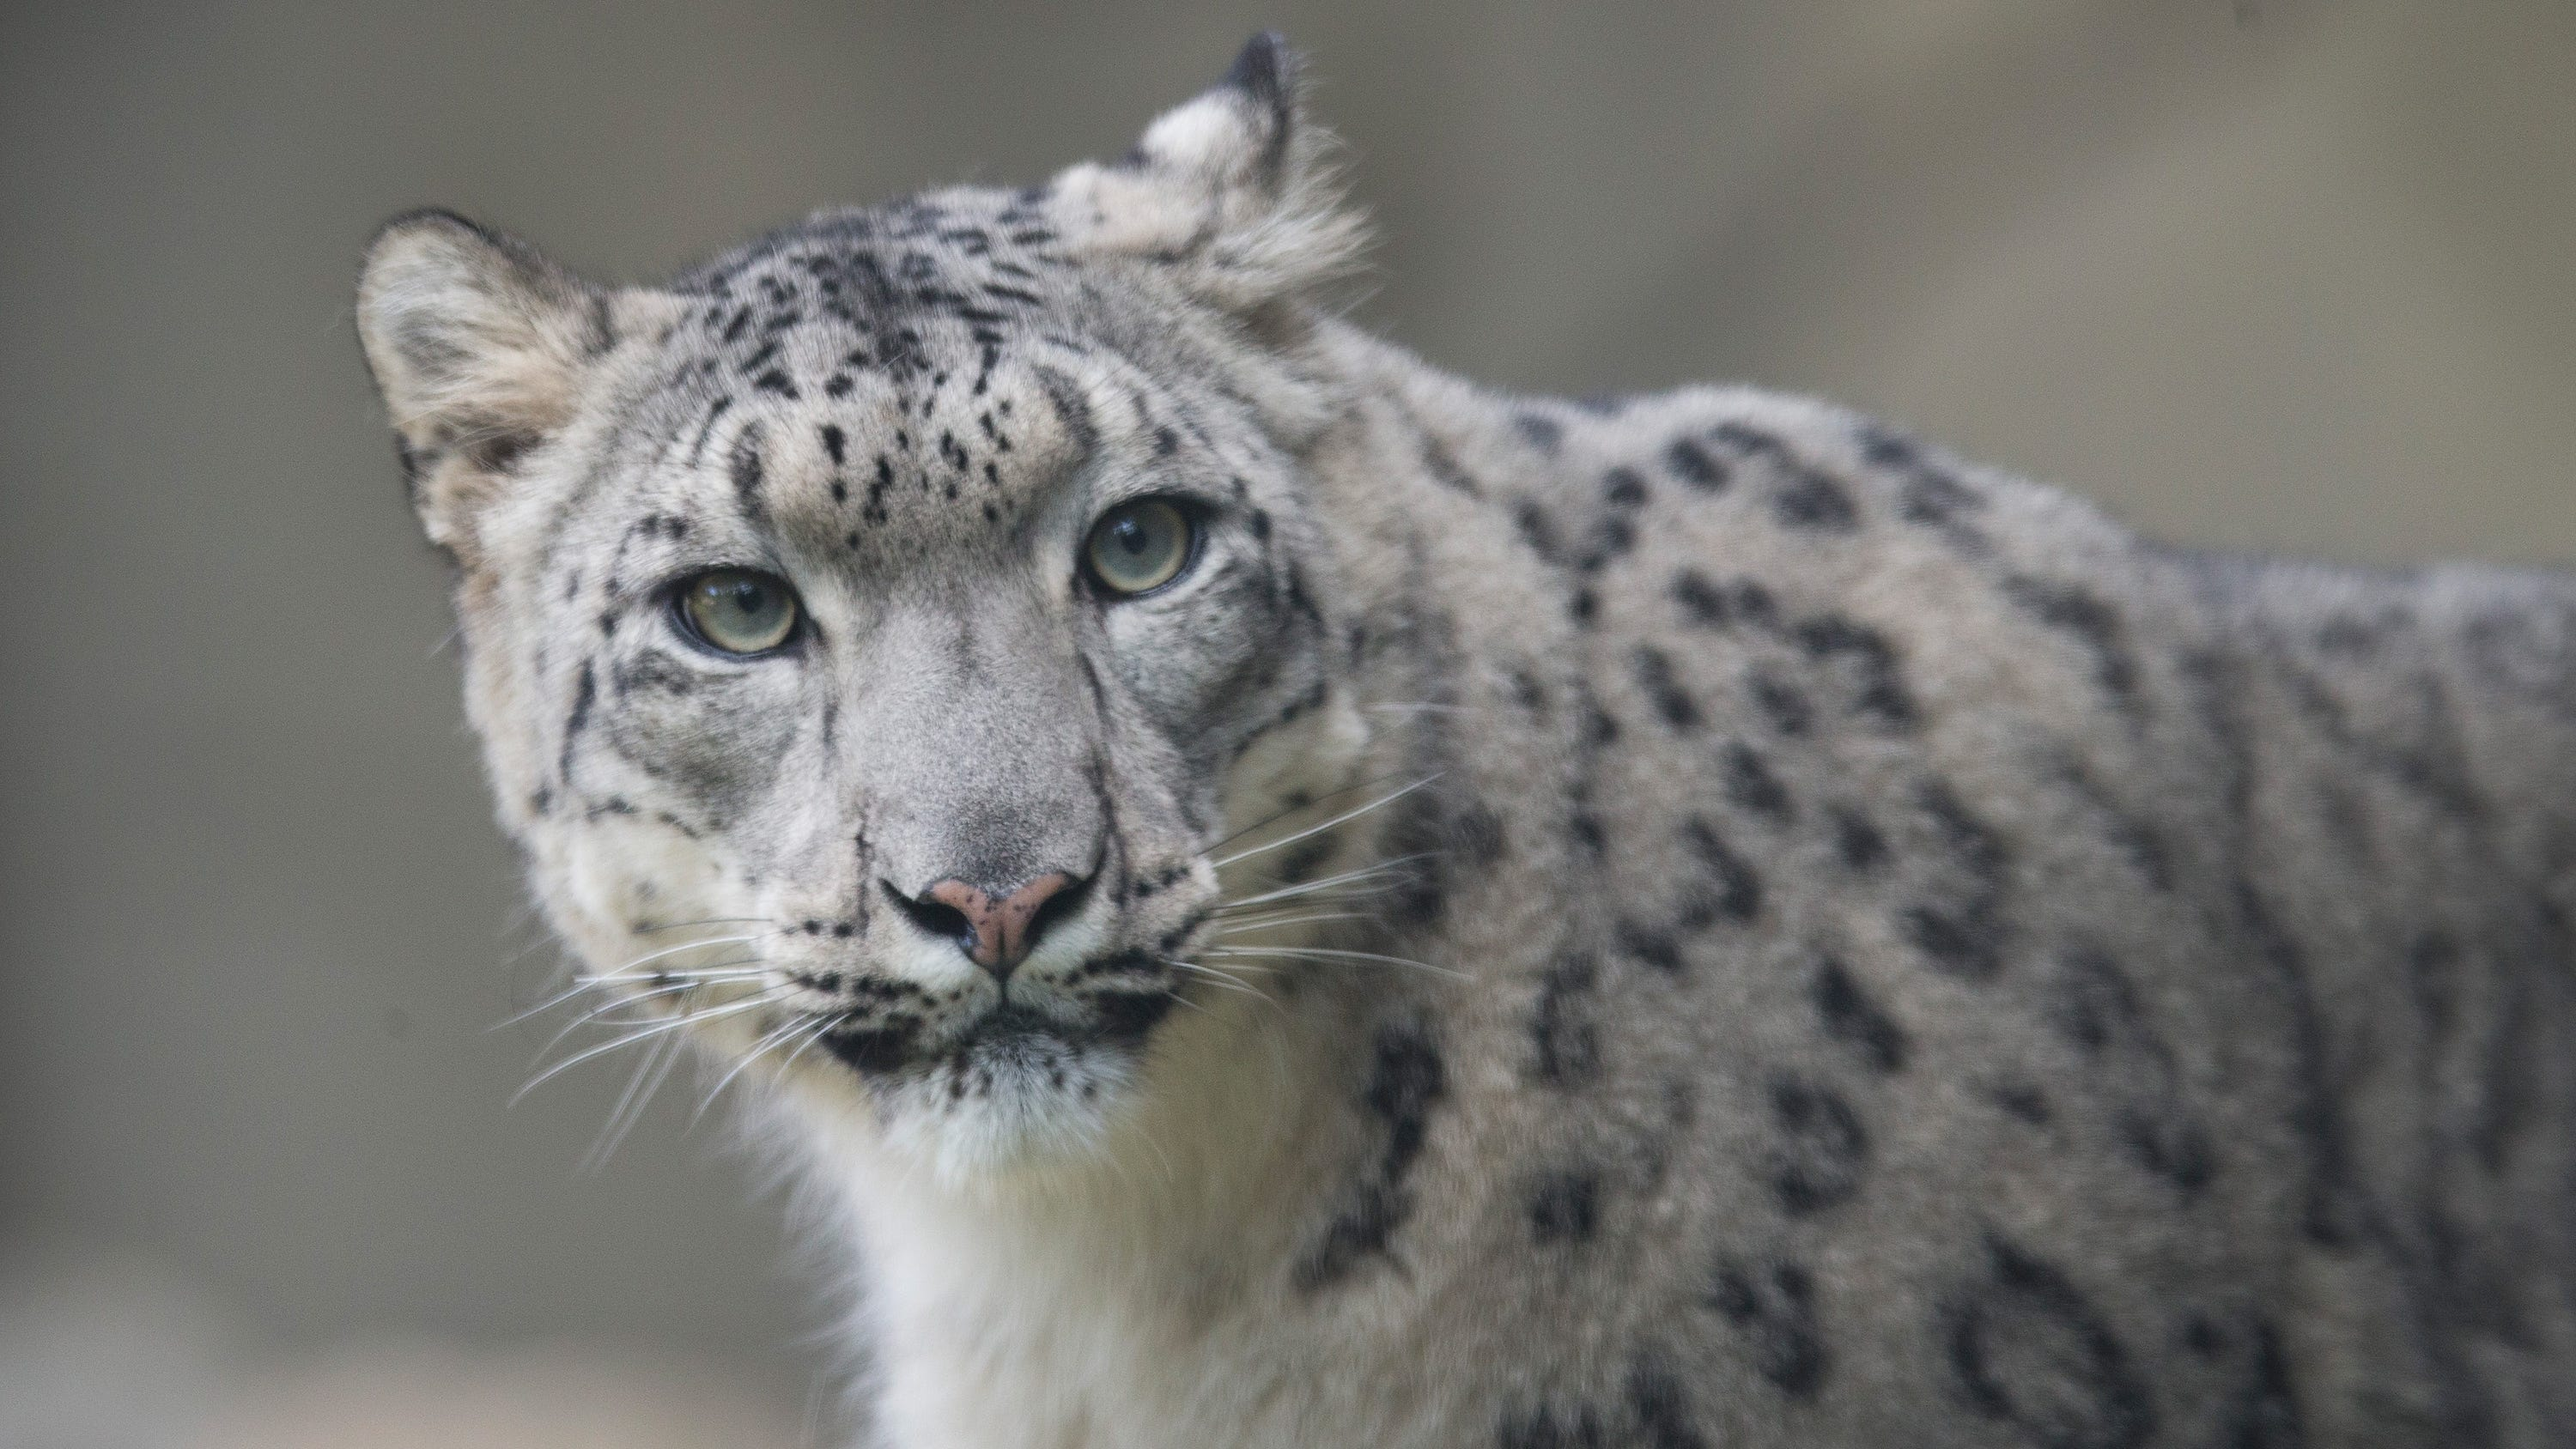 San Diego Zoo snow leopard tests positive for Covid-19, unclear if Delta variant